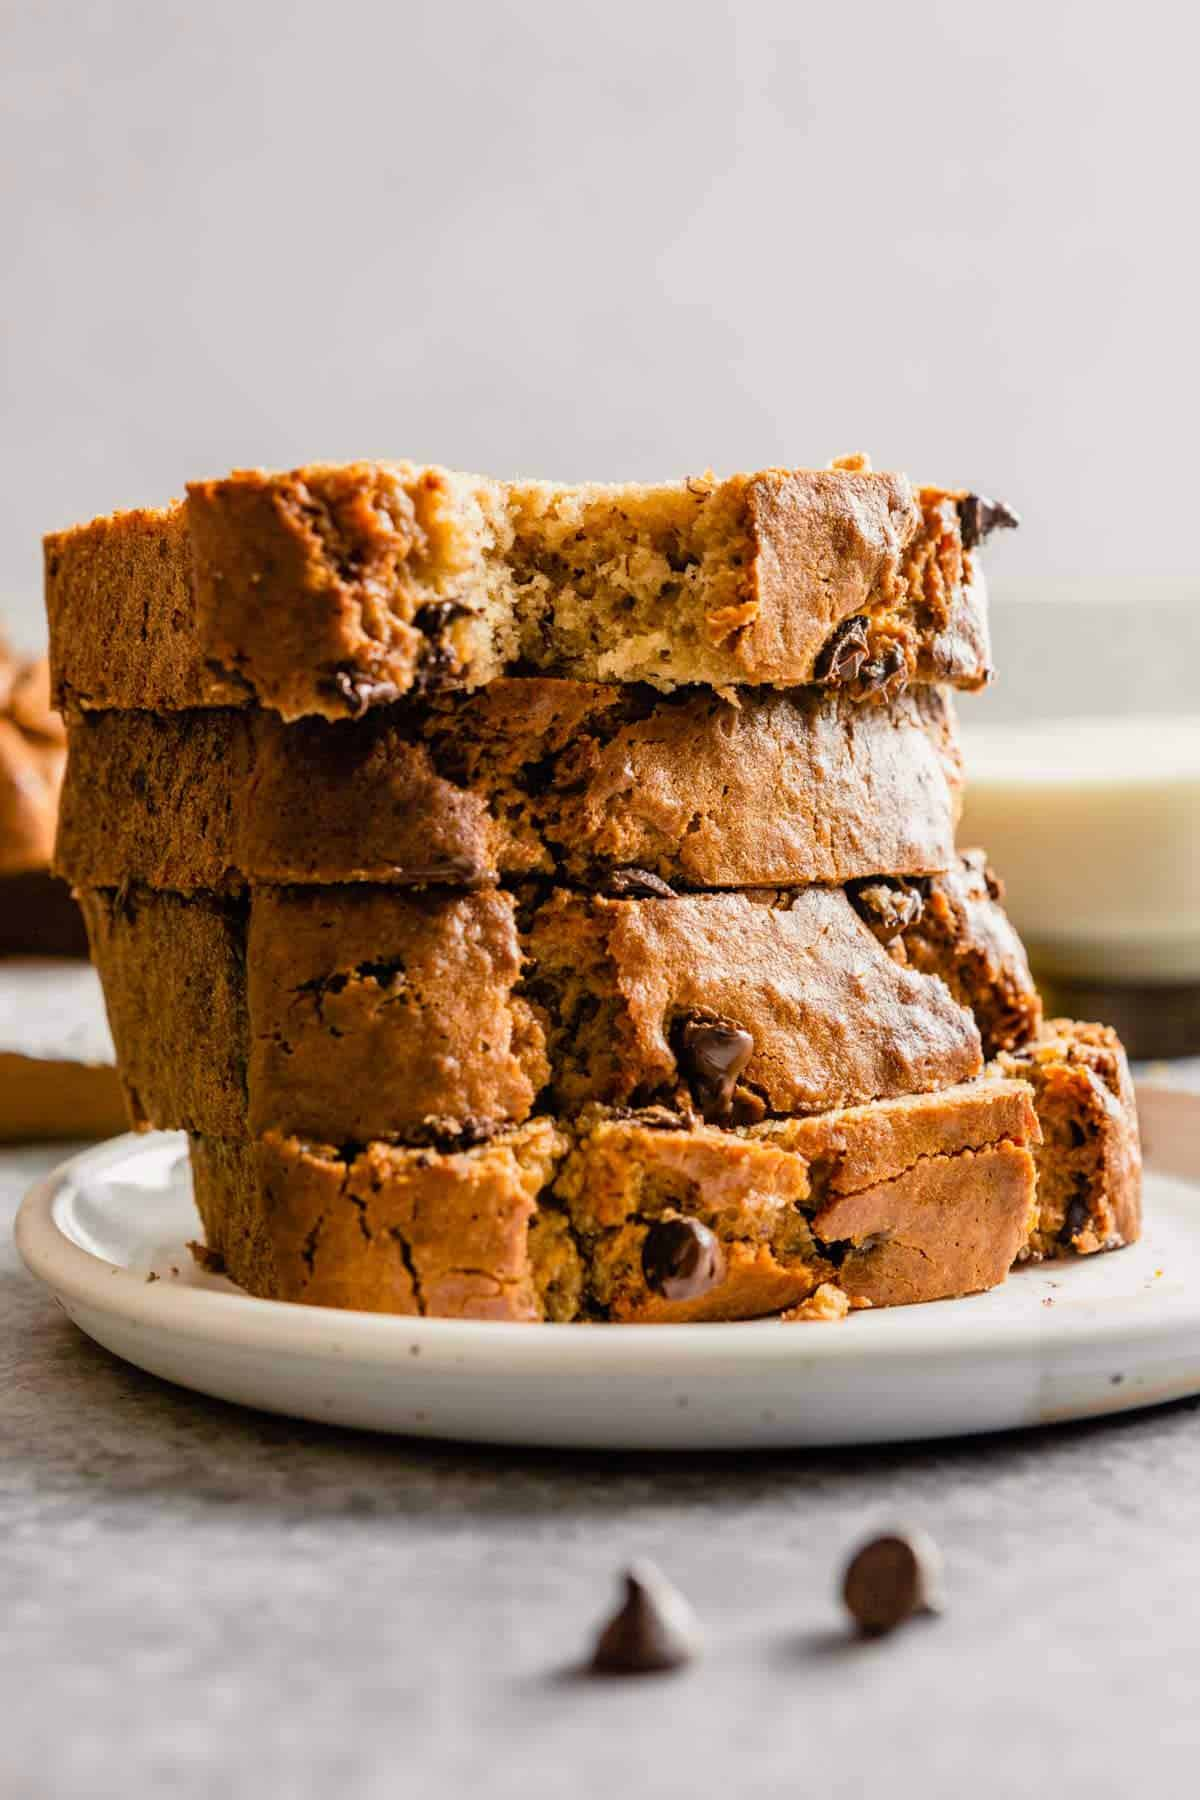 A stack of slices of peanut butter banana bread on a white plate.